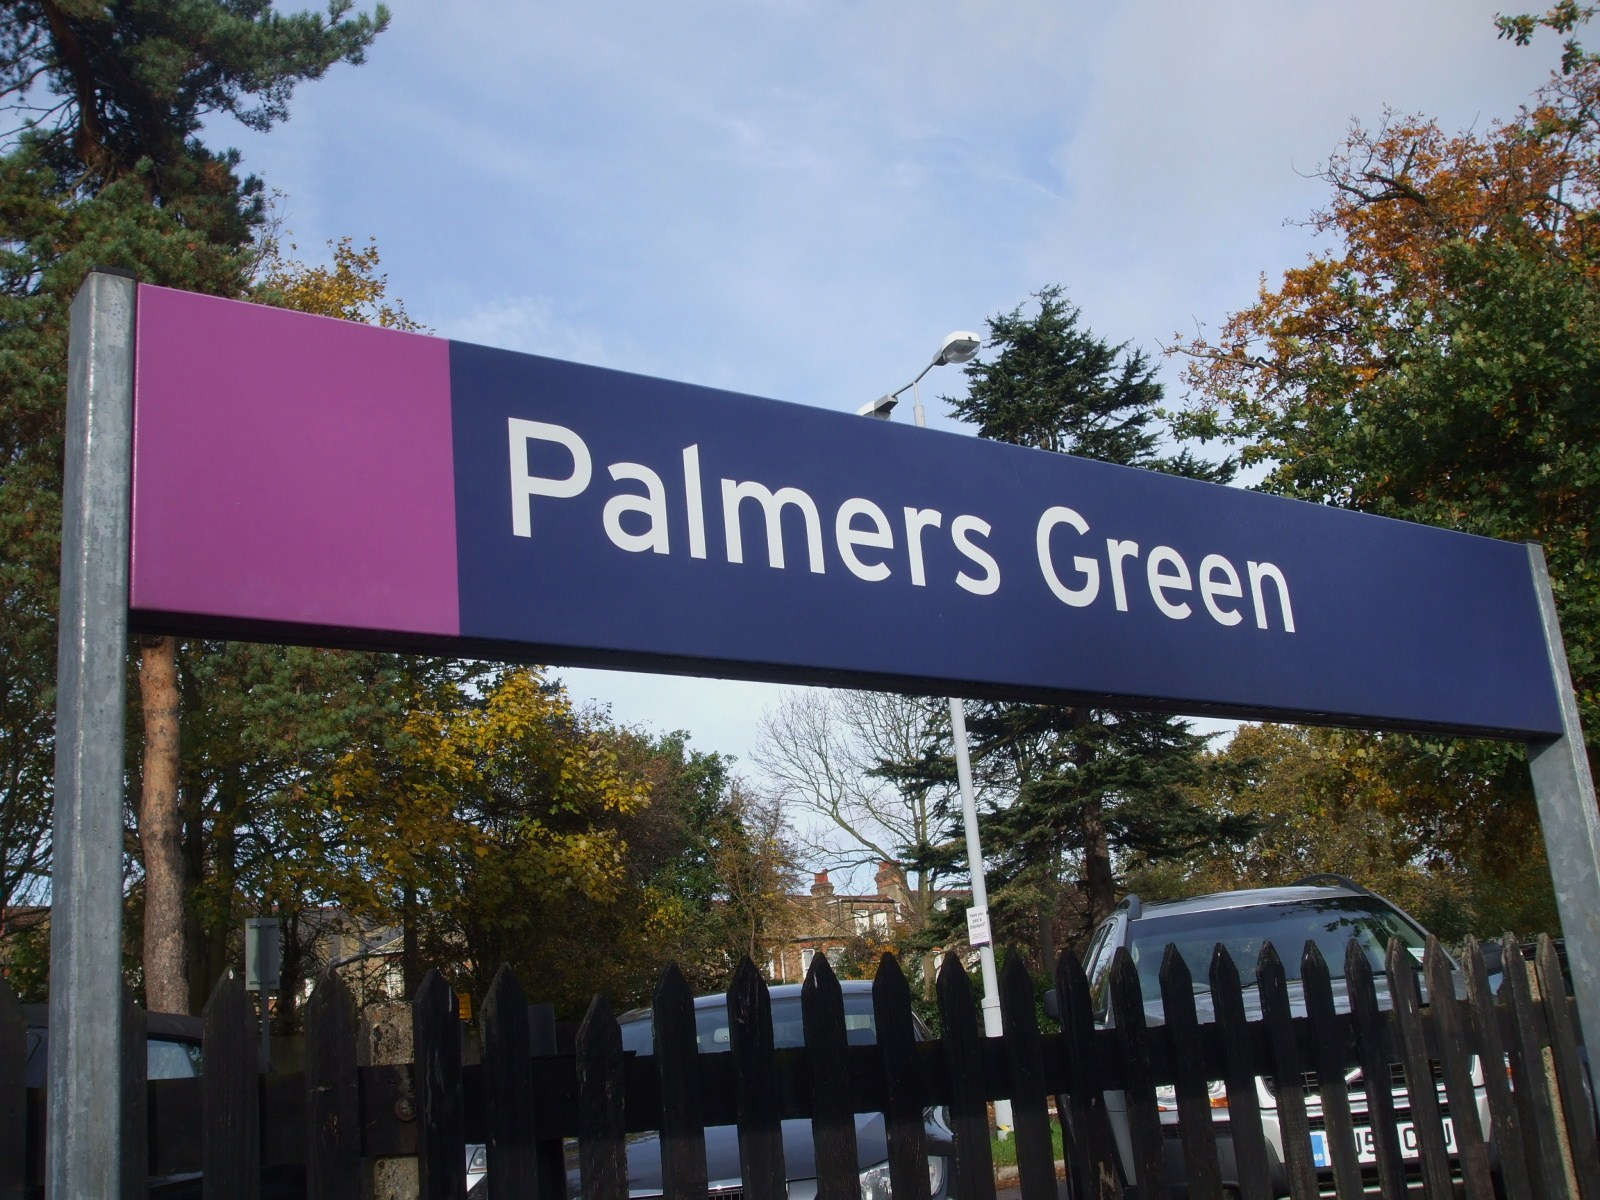 wheelchair emirates folding chair giant taxi transfer from palmers green (n13) to heathrow airport